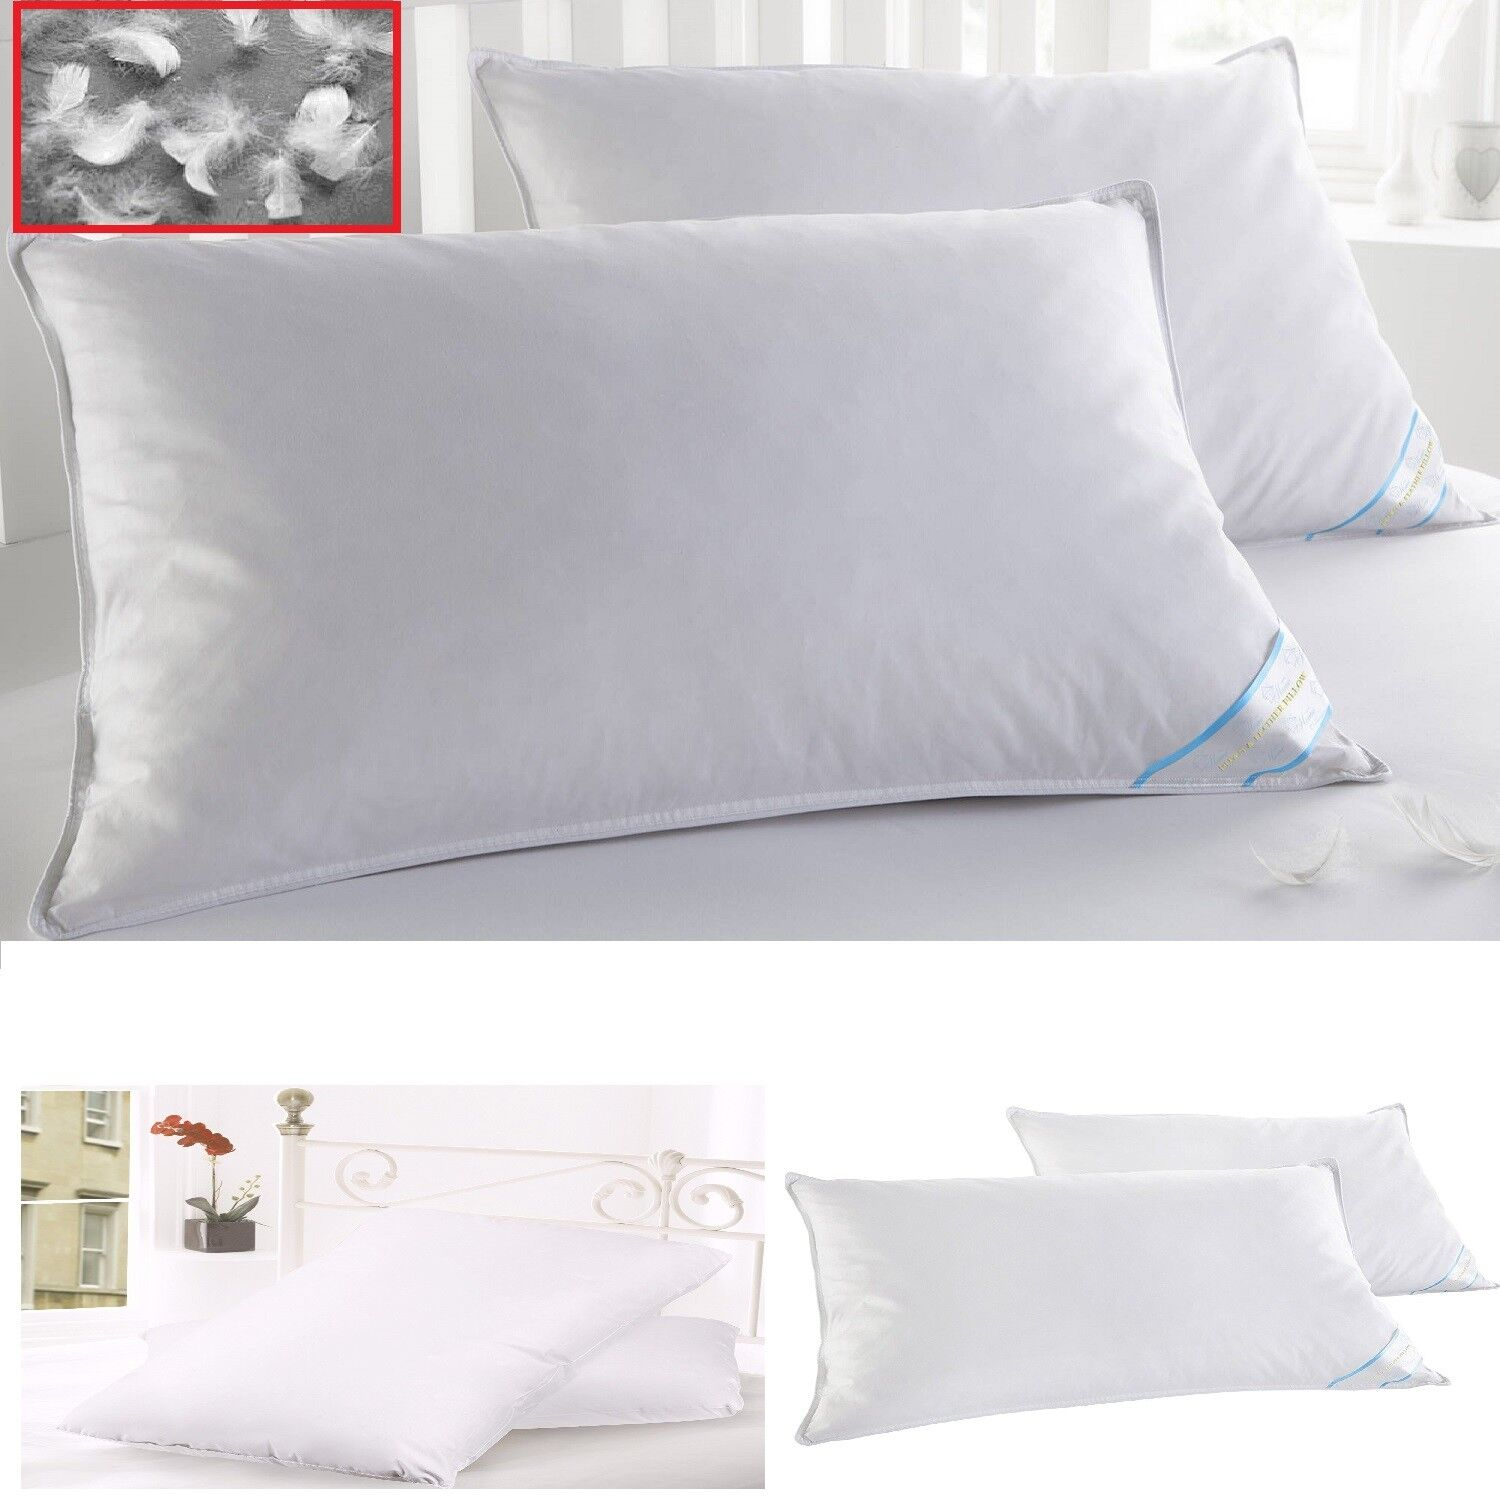 tutorial icandy and makeover king size dsc sized copy pillow diy bed shams handmade